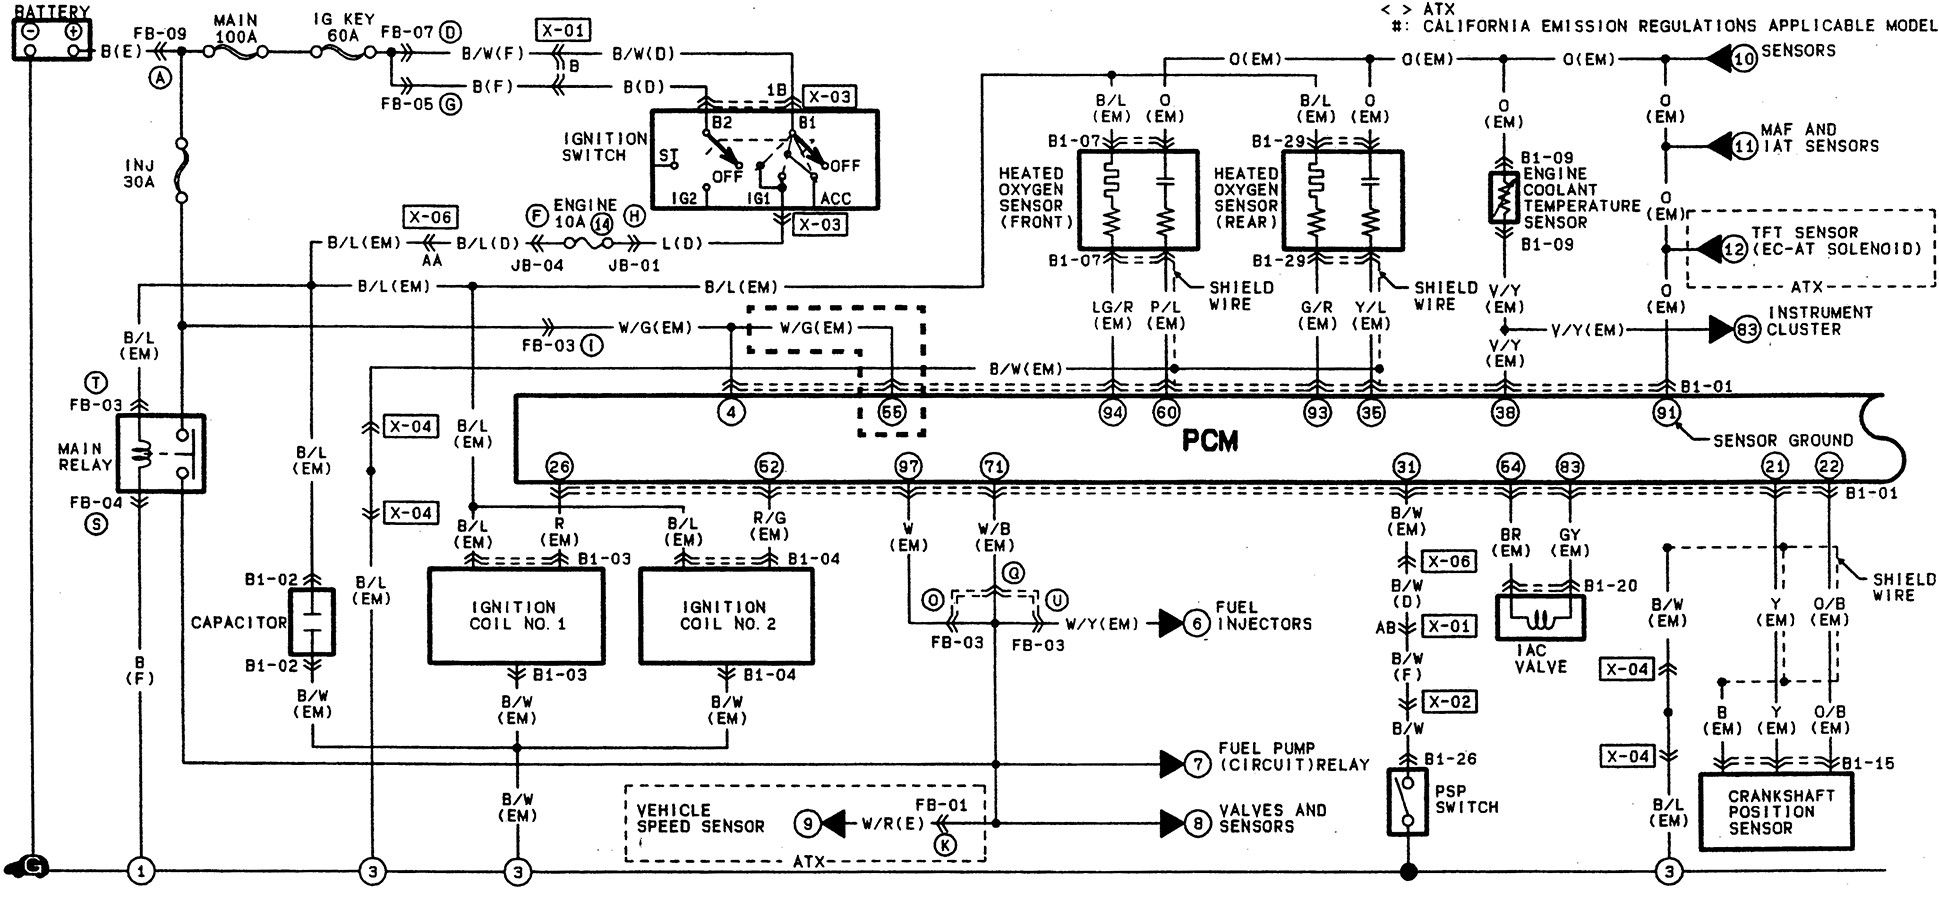 Mazda 323 Wiring Diagram Beautiful